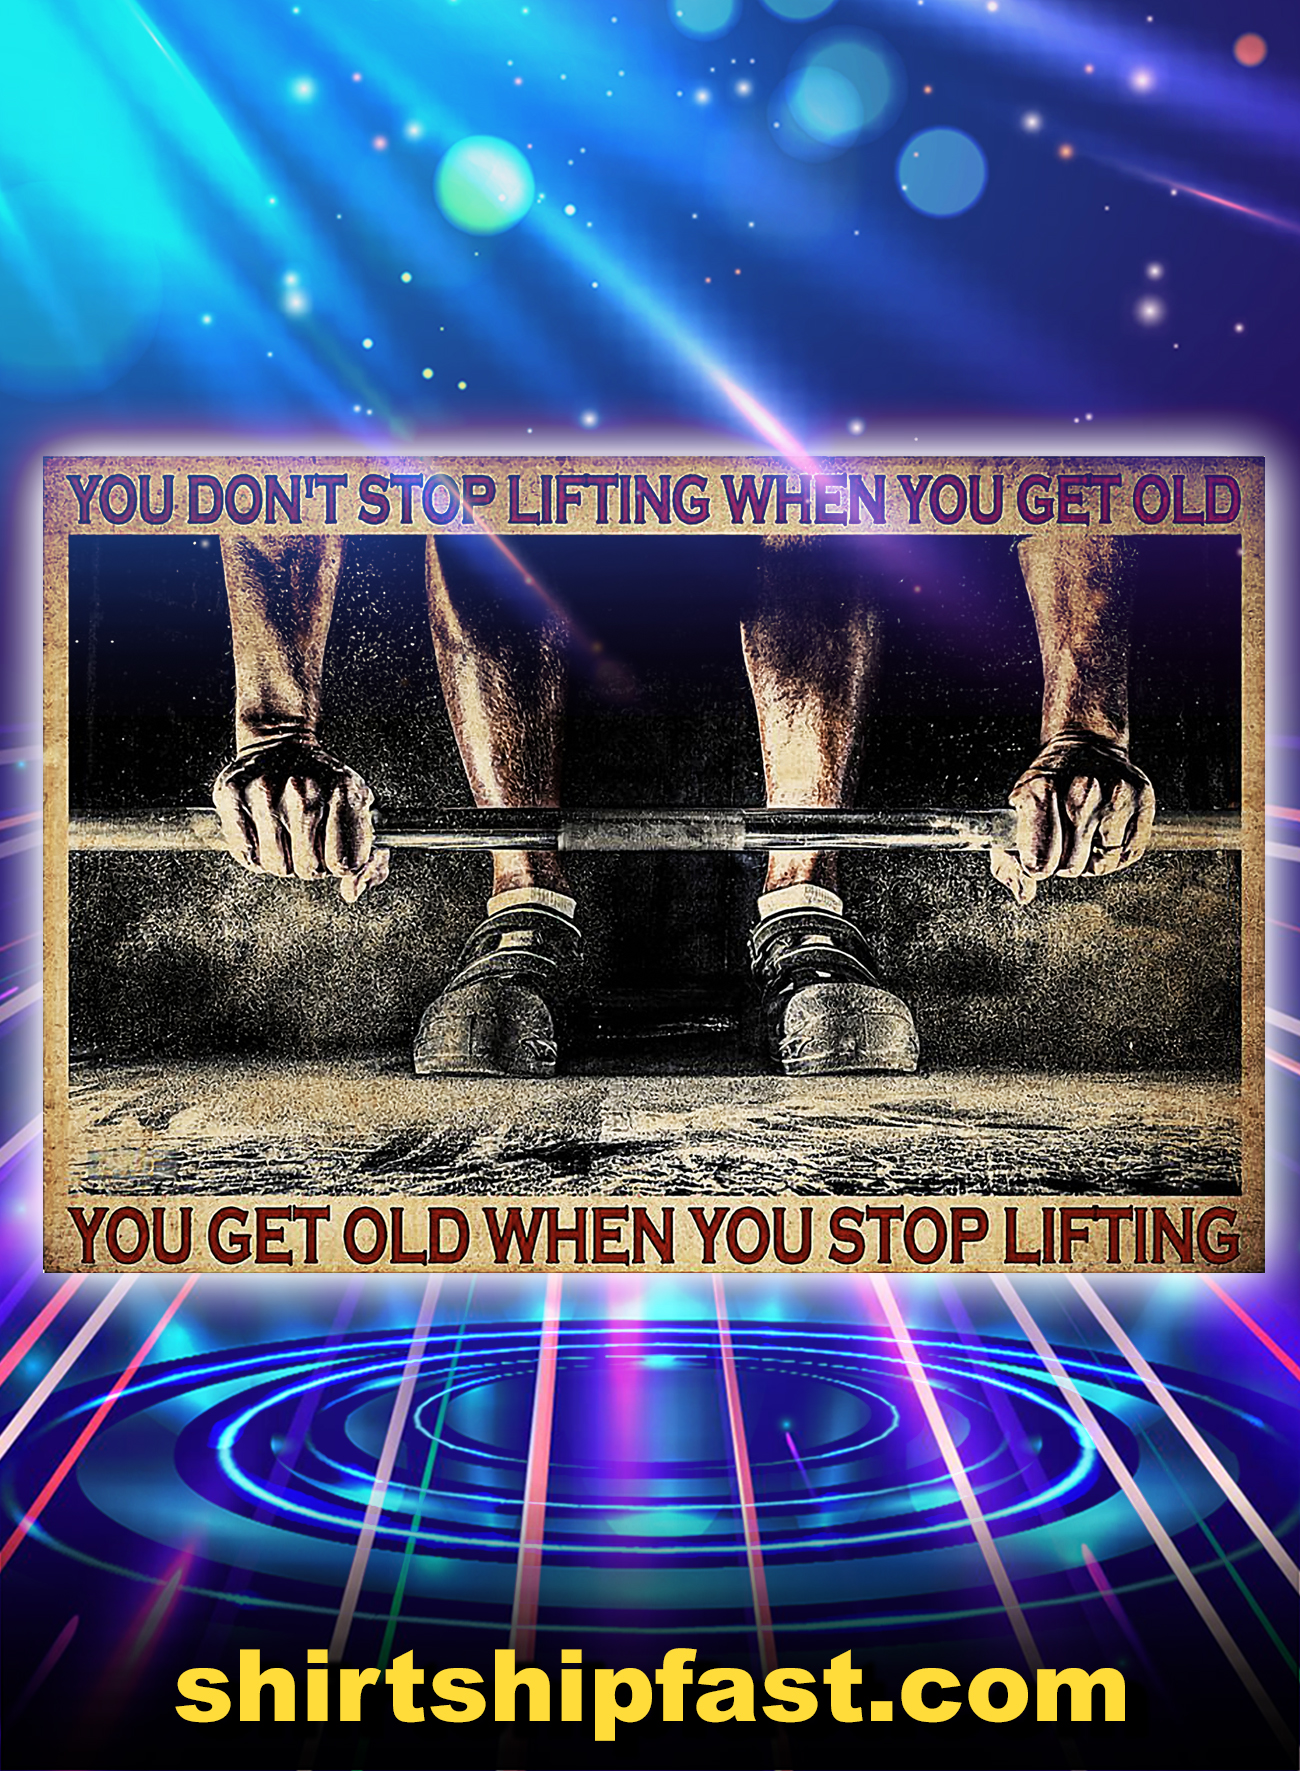 Poster Fitness you don't stop lifting when you get old - A4